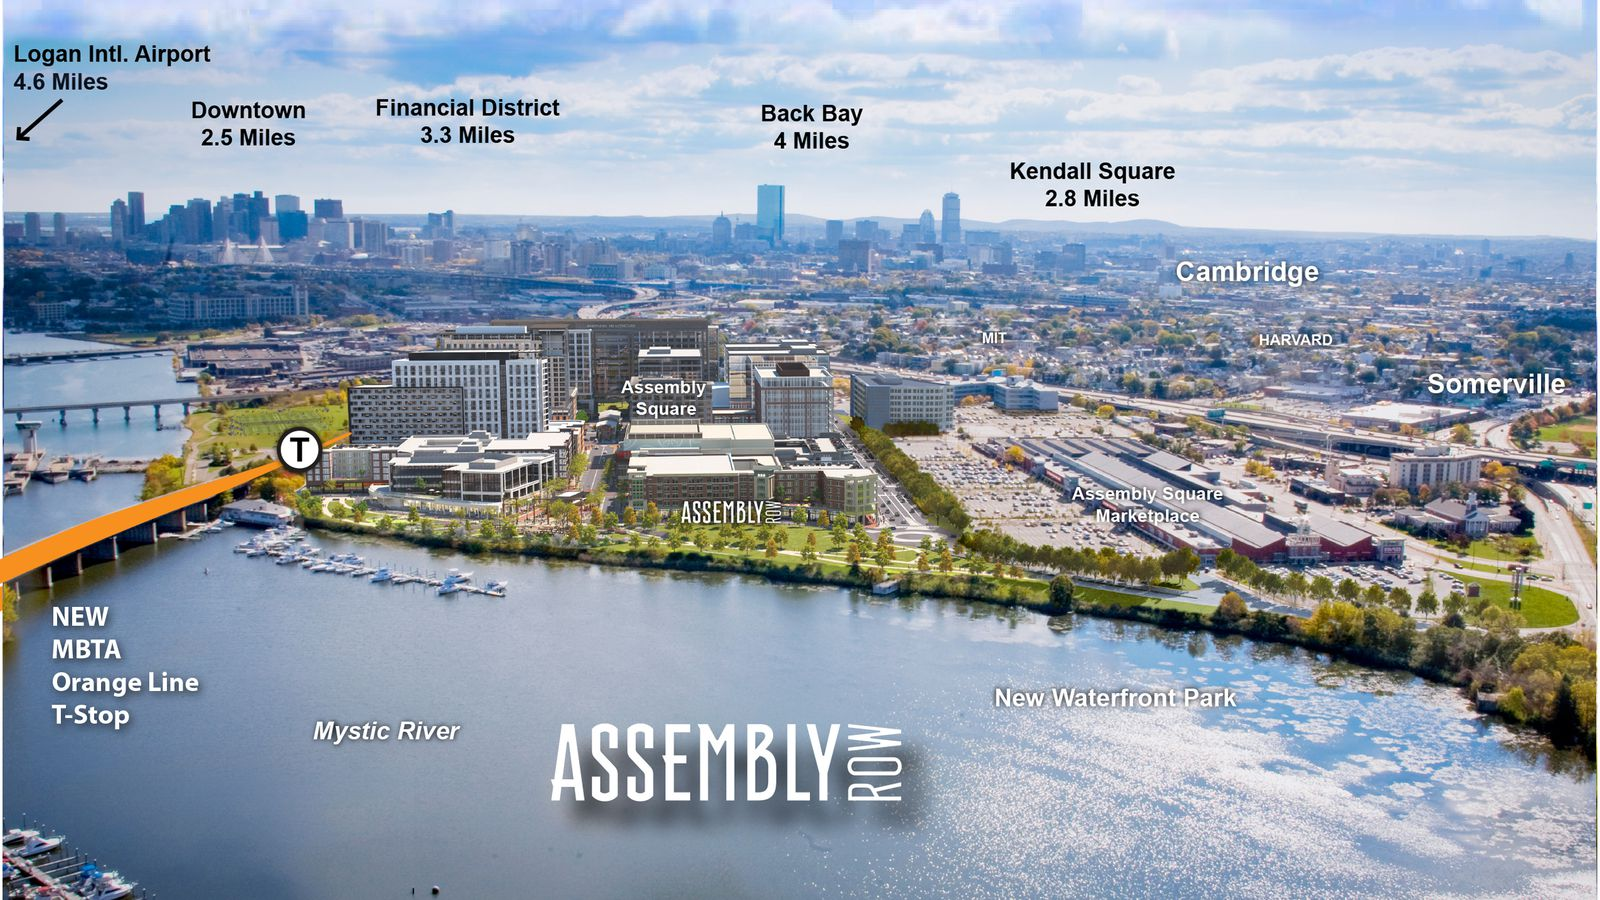 Somerville S Assembly Row Expanding To More Than 1 000